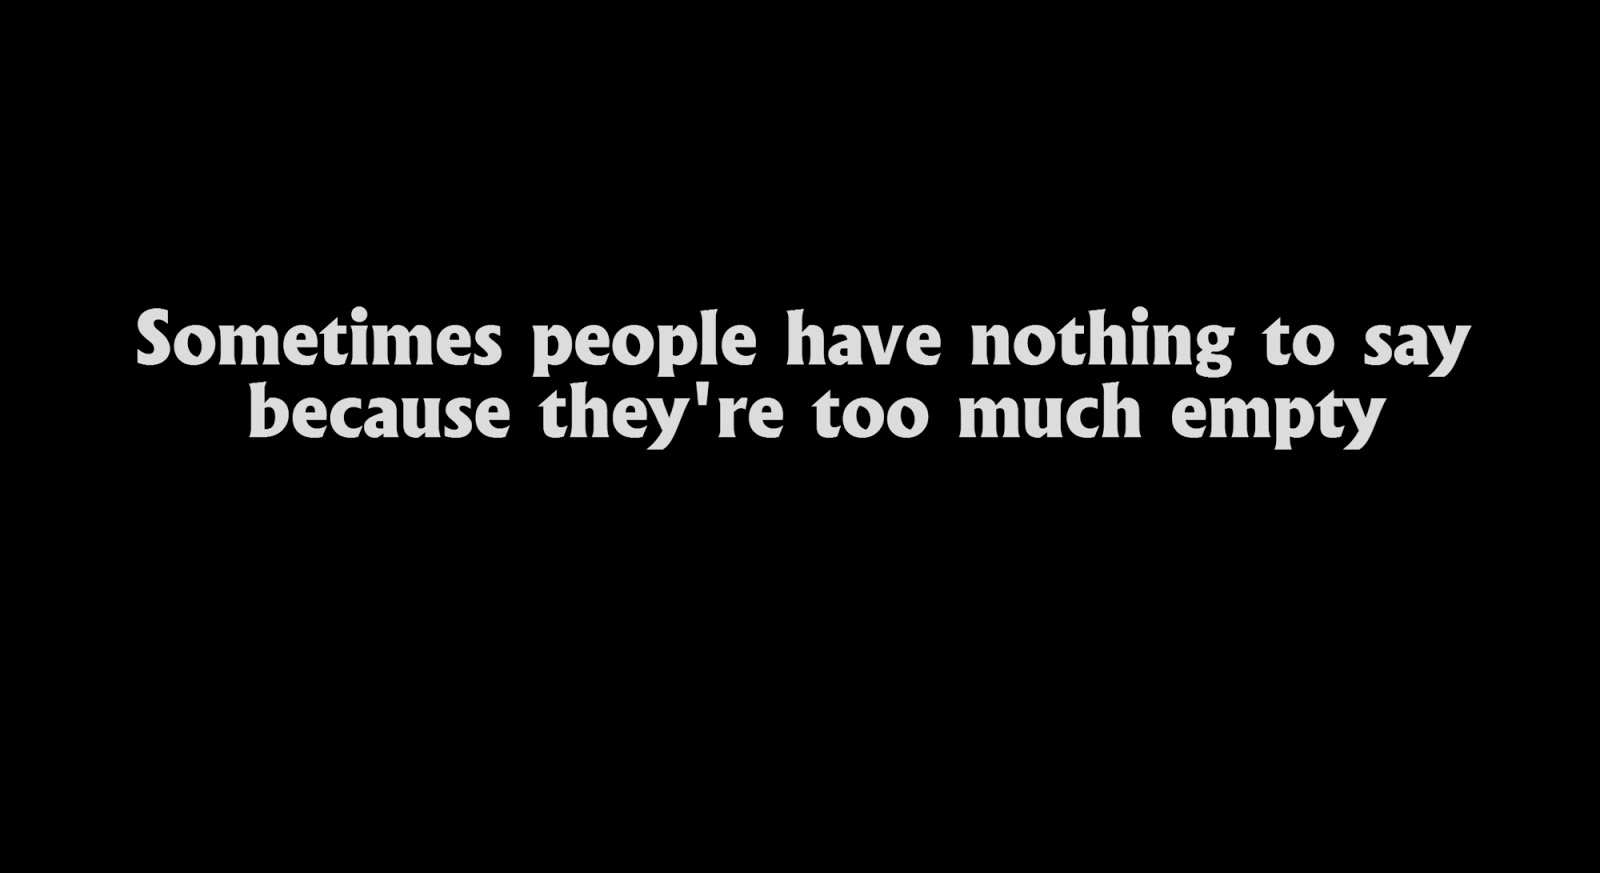 Sometimes people have nothing to say because they're too much empty